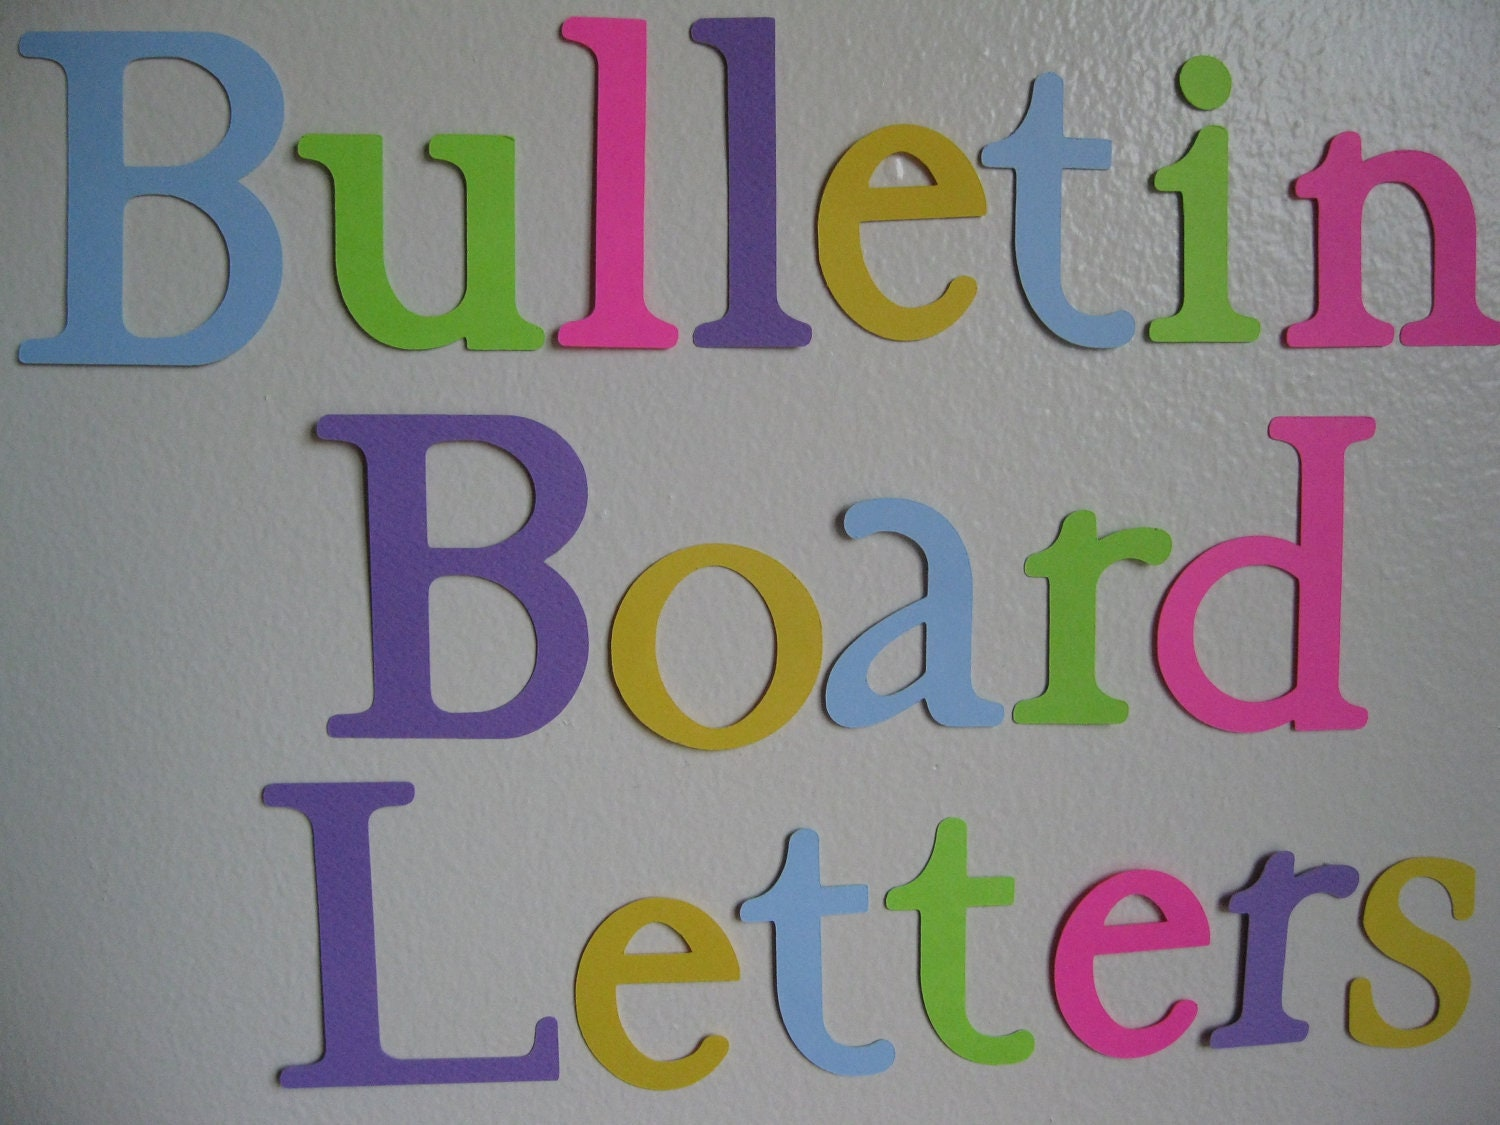 Effortless image intended for printable cut out letters for bulletin boards